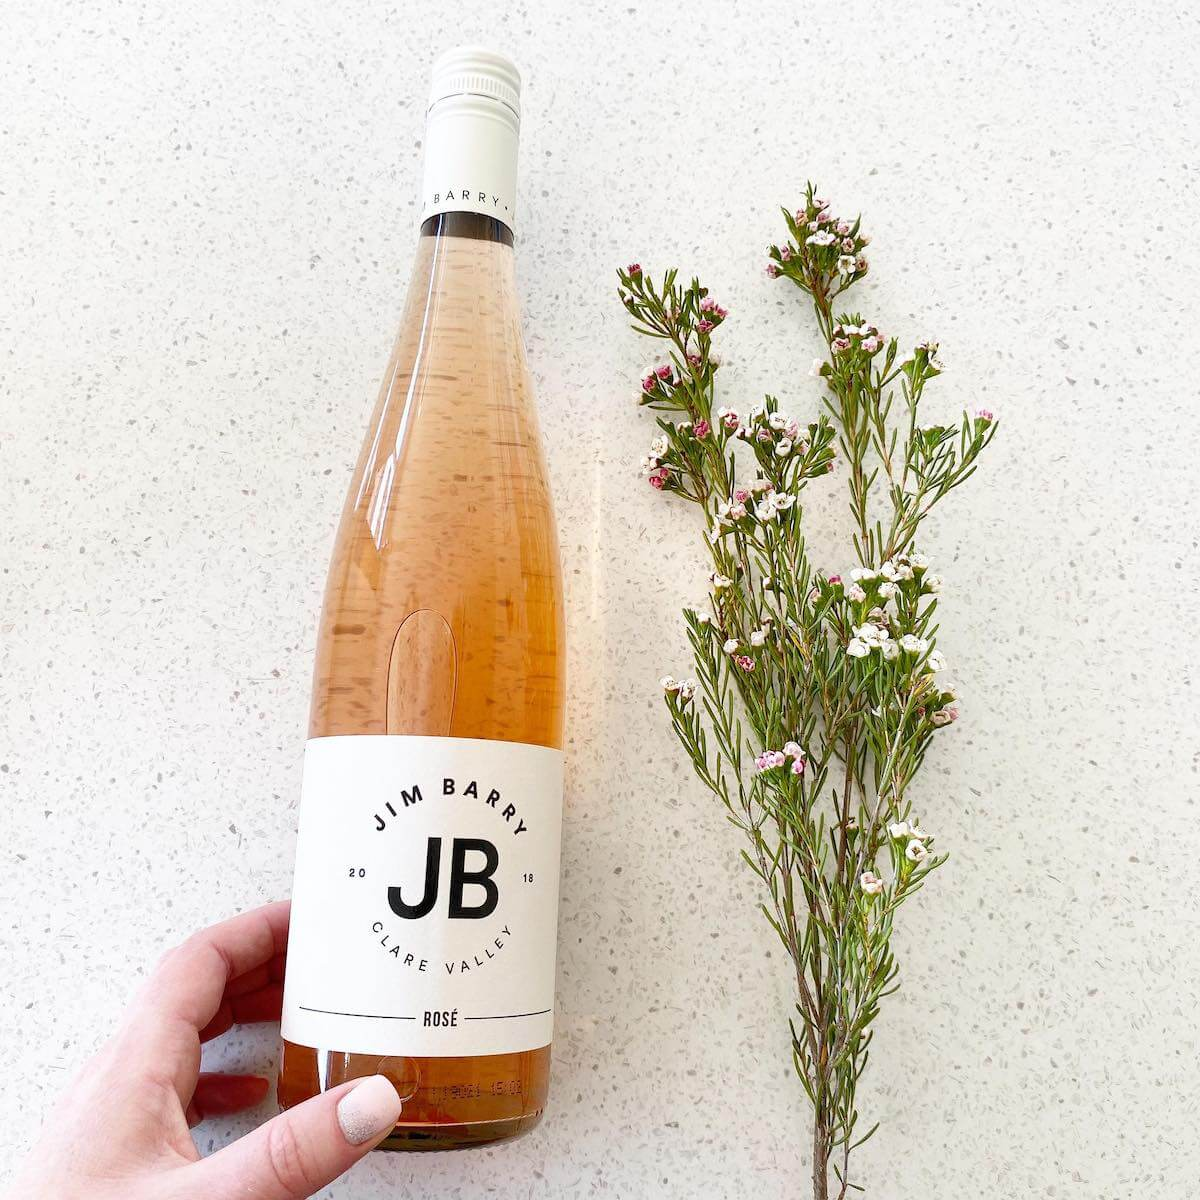 Jim Barry JB 2018 Rose - Clare Valley